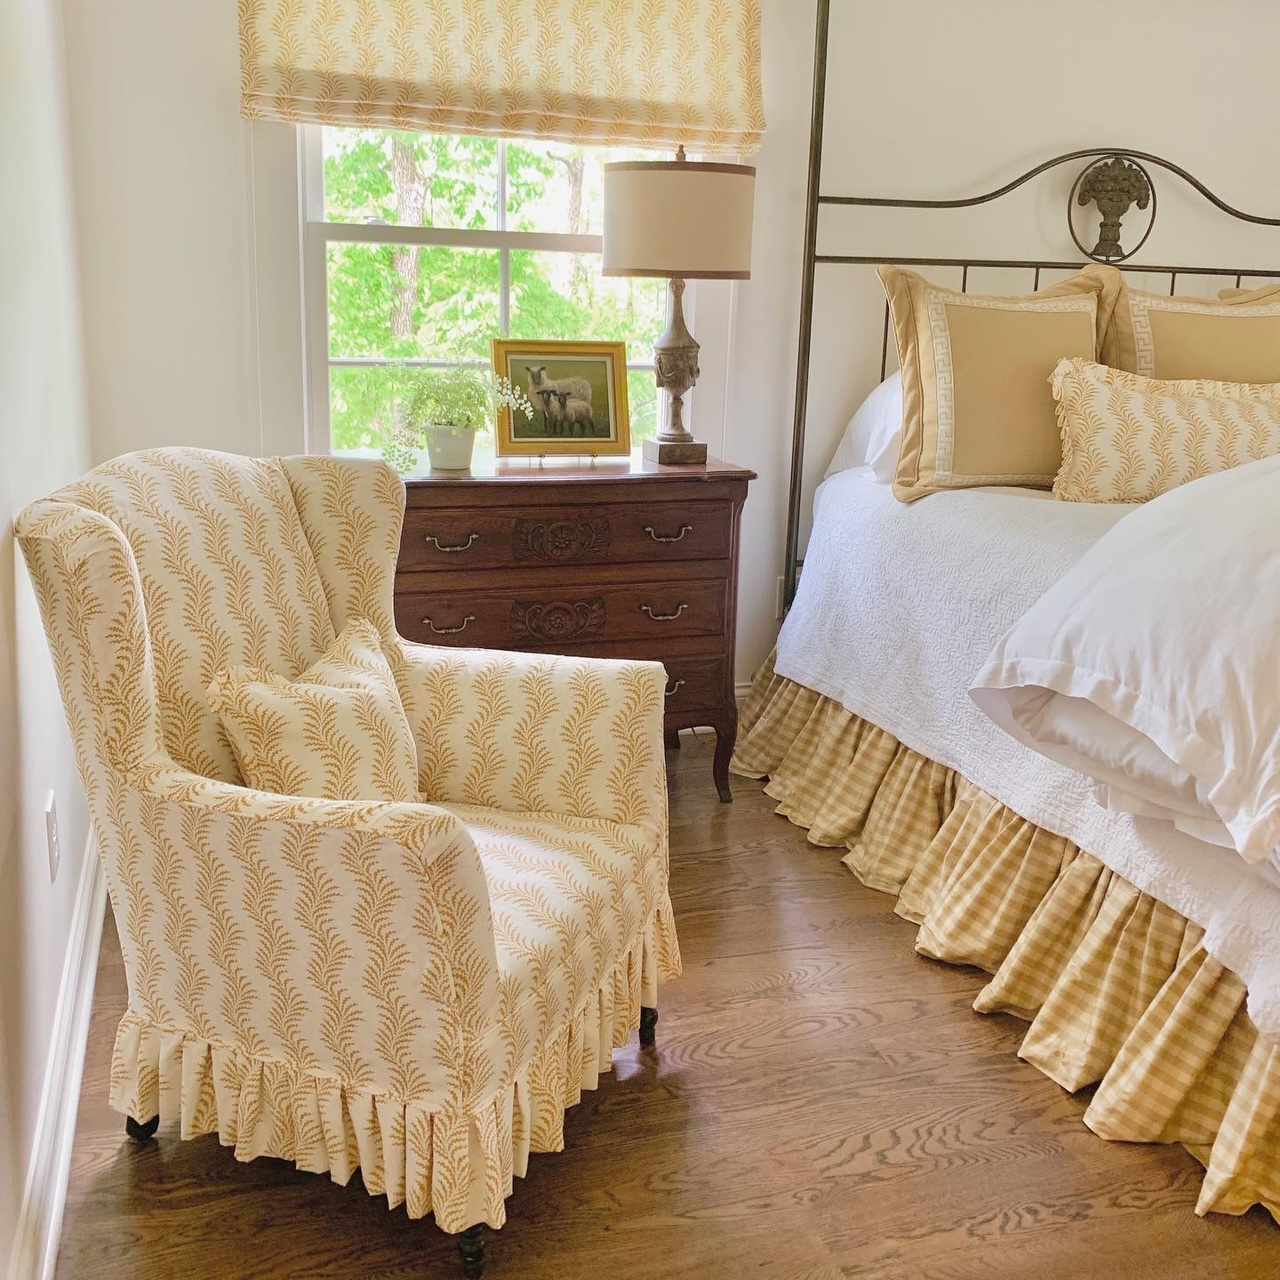 bedroom with yellow and white patterned fabrics